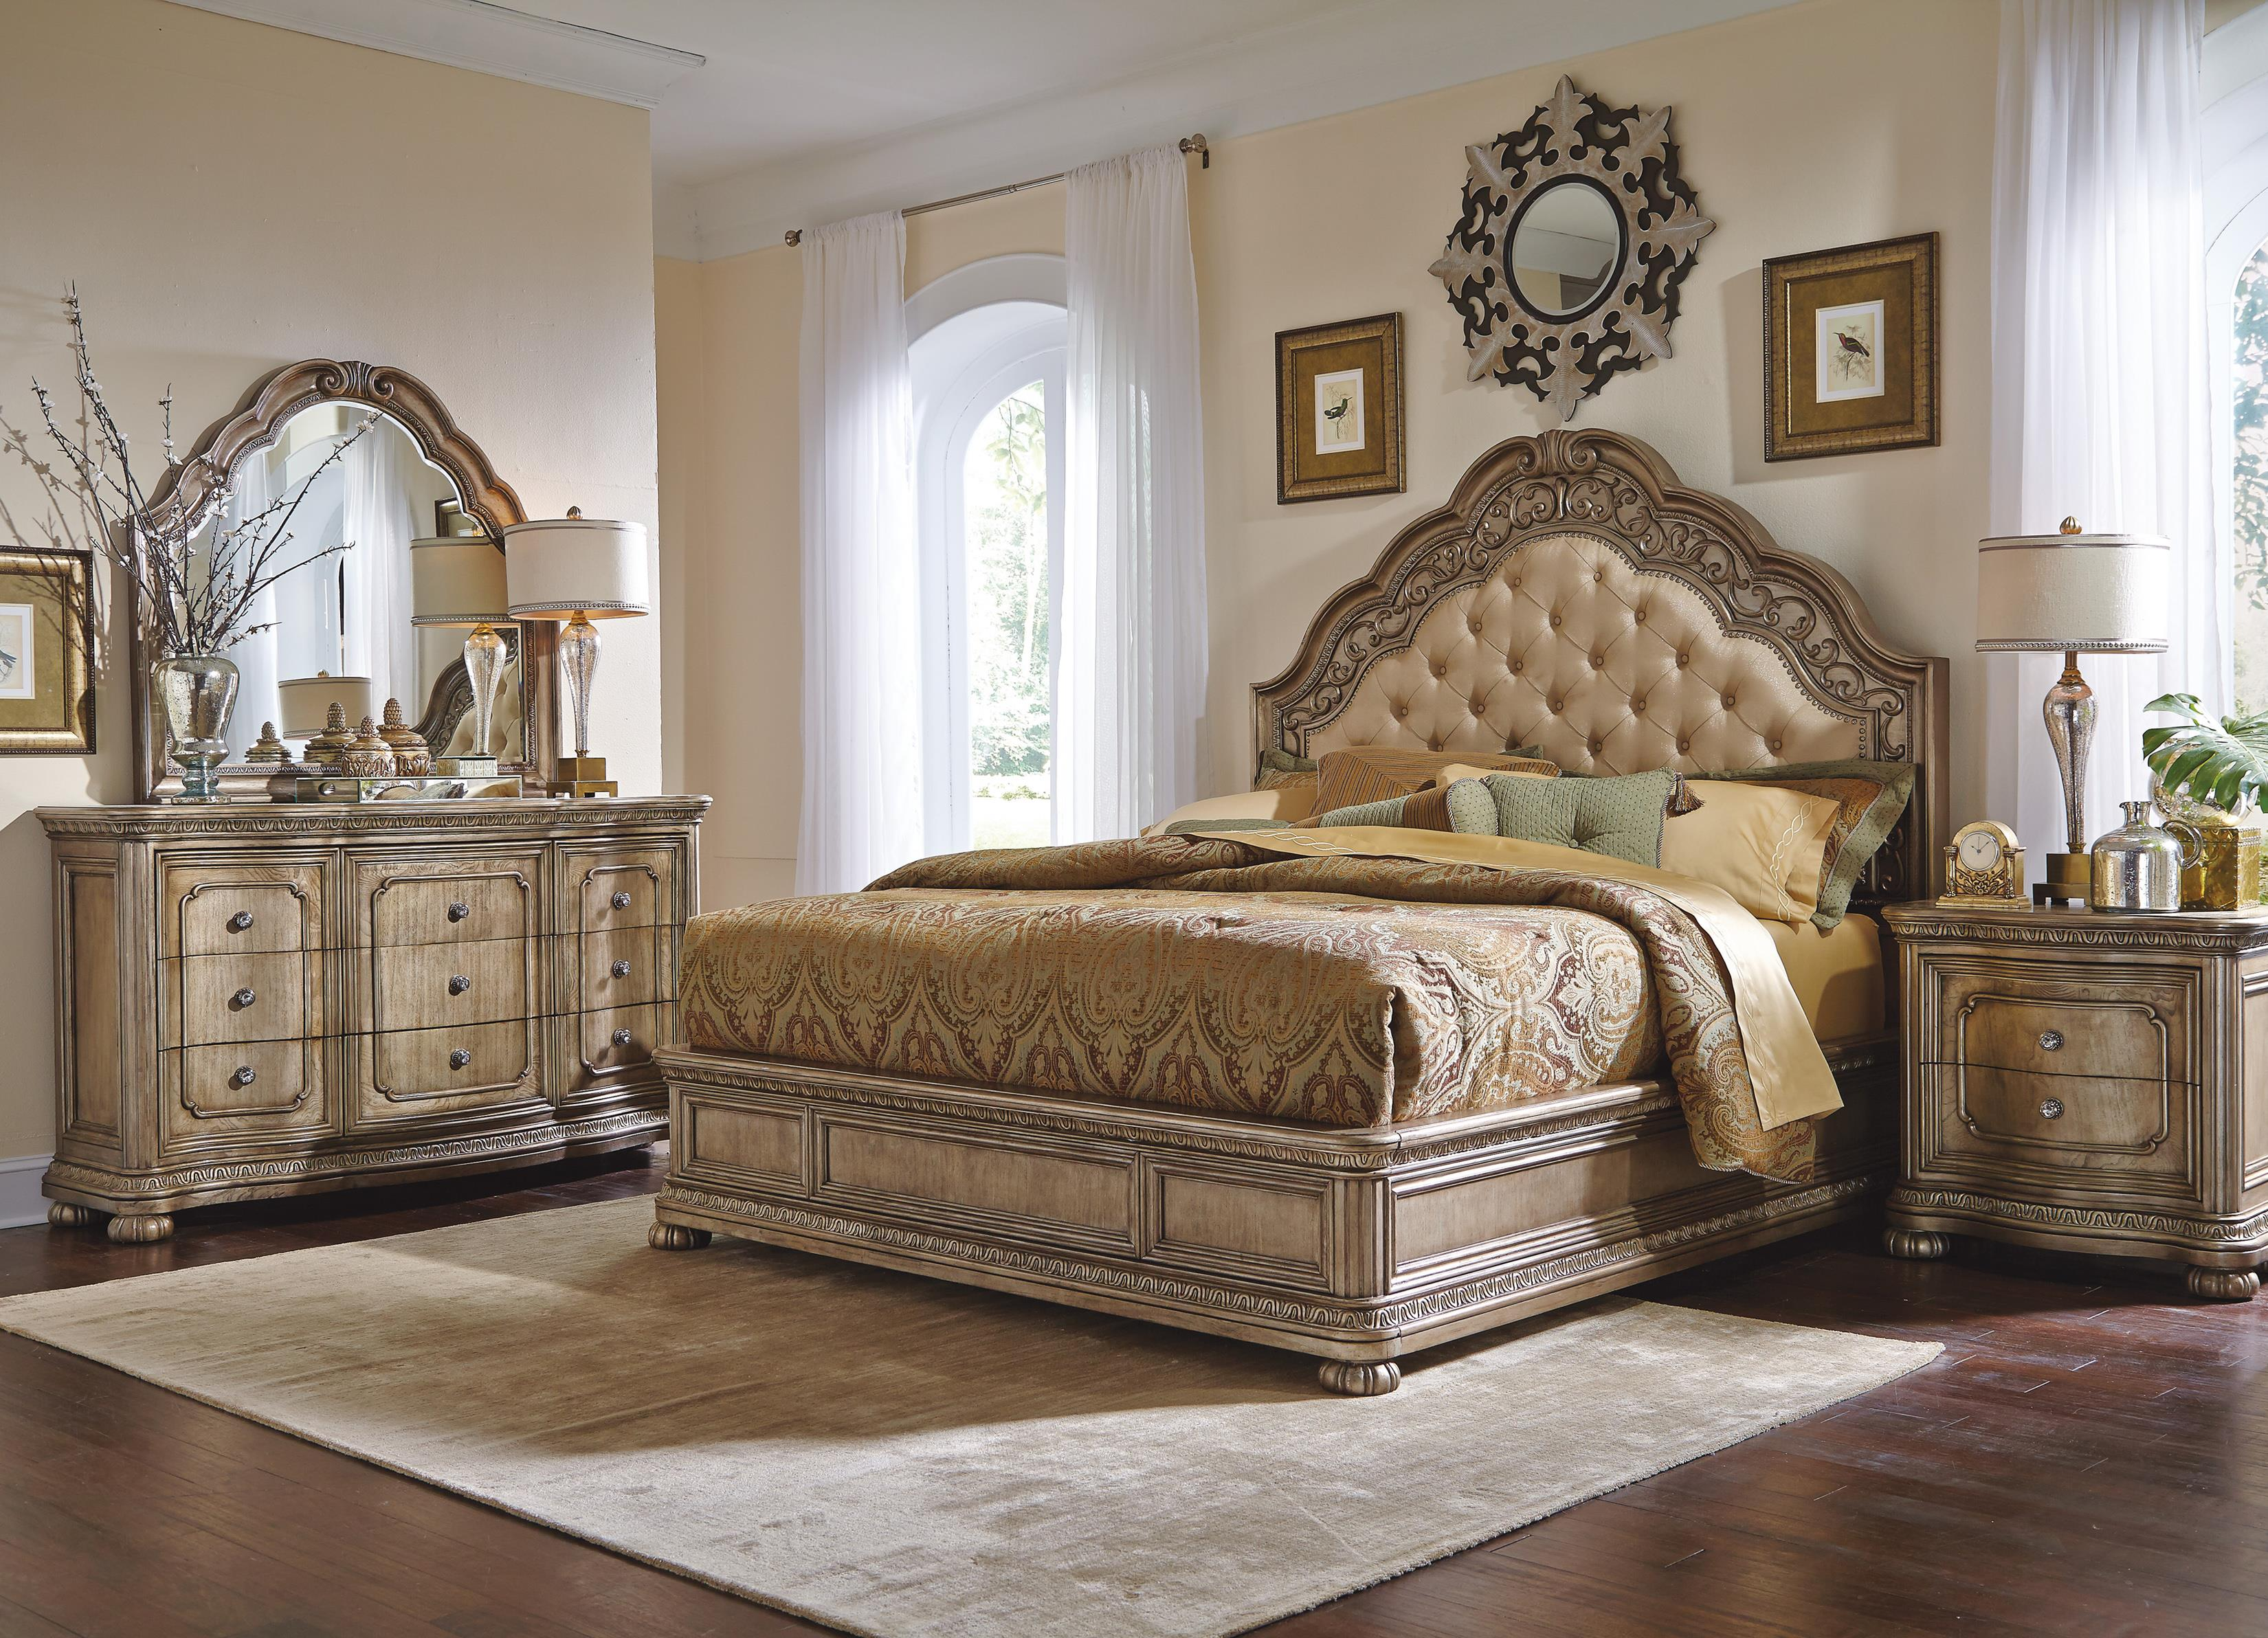 cordoba furniture queen bedroom kane t it for you find bedrooms collections blanco won products s less